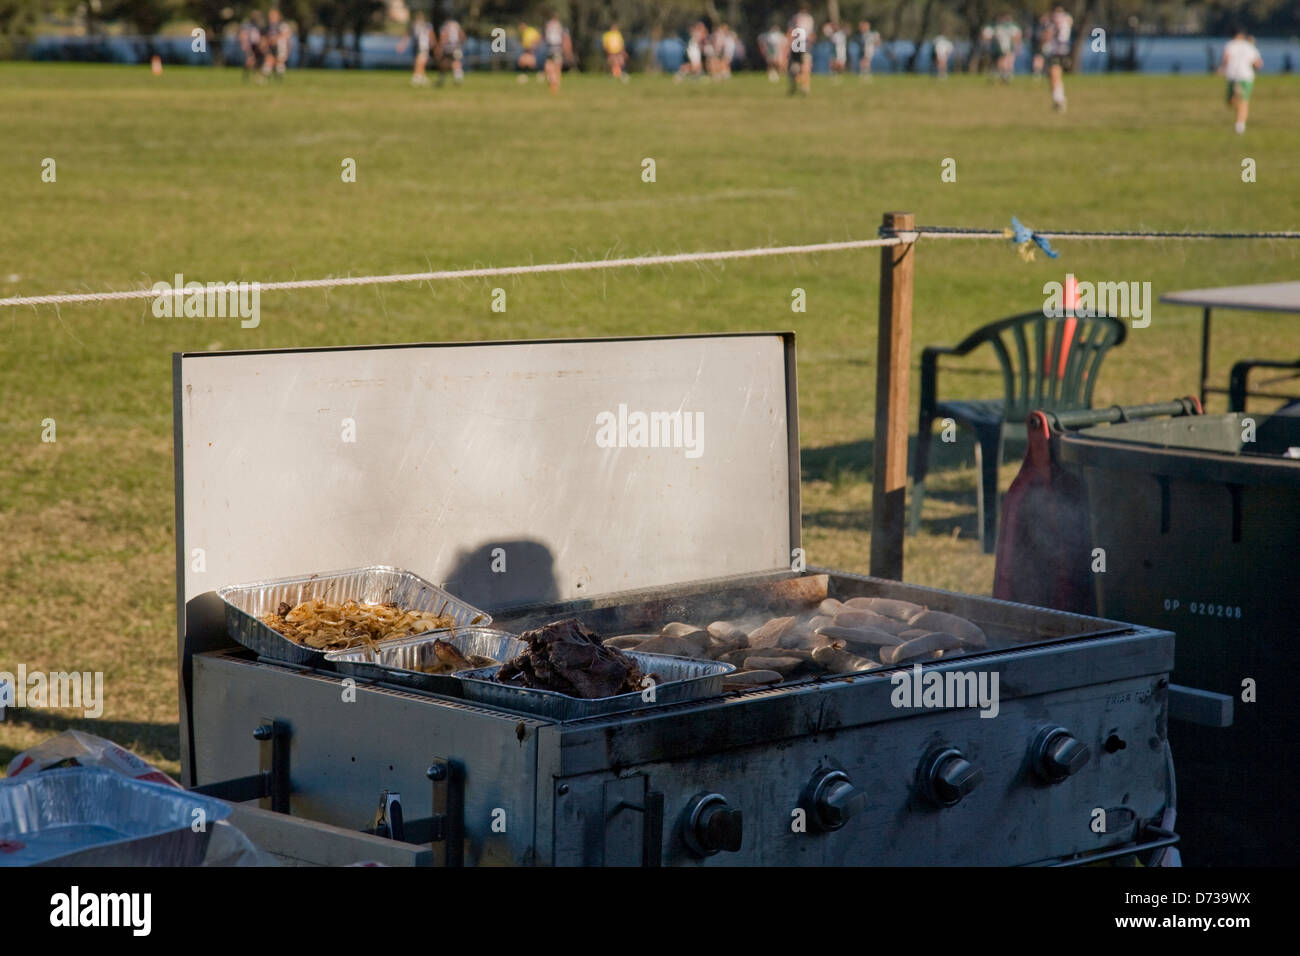 australian barbeque at local rugby league game Stock Photo